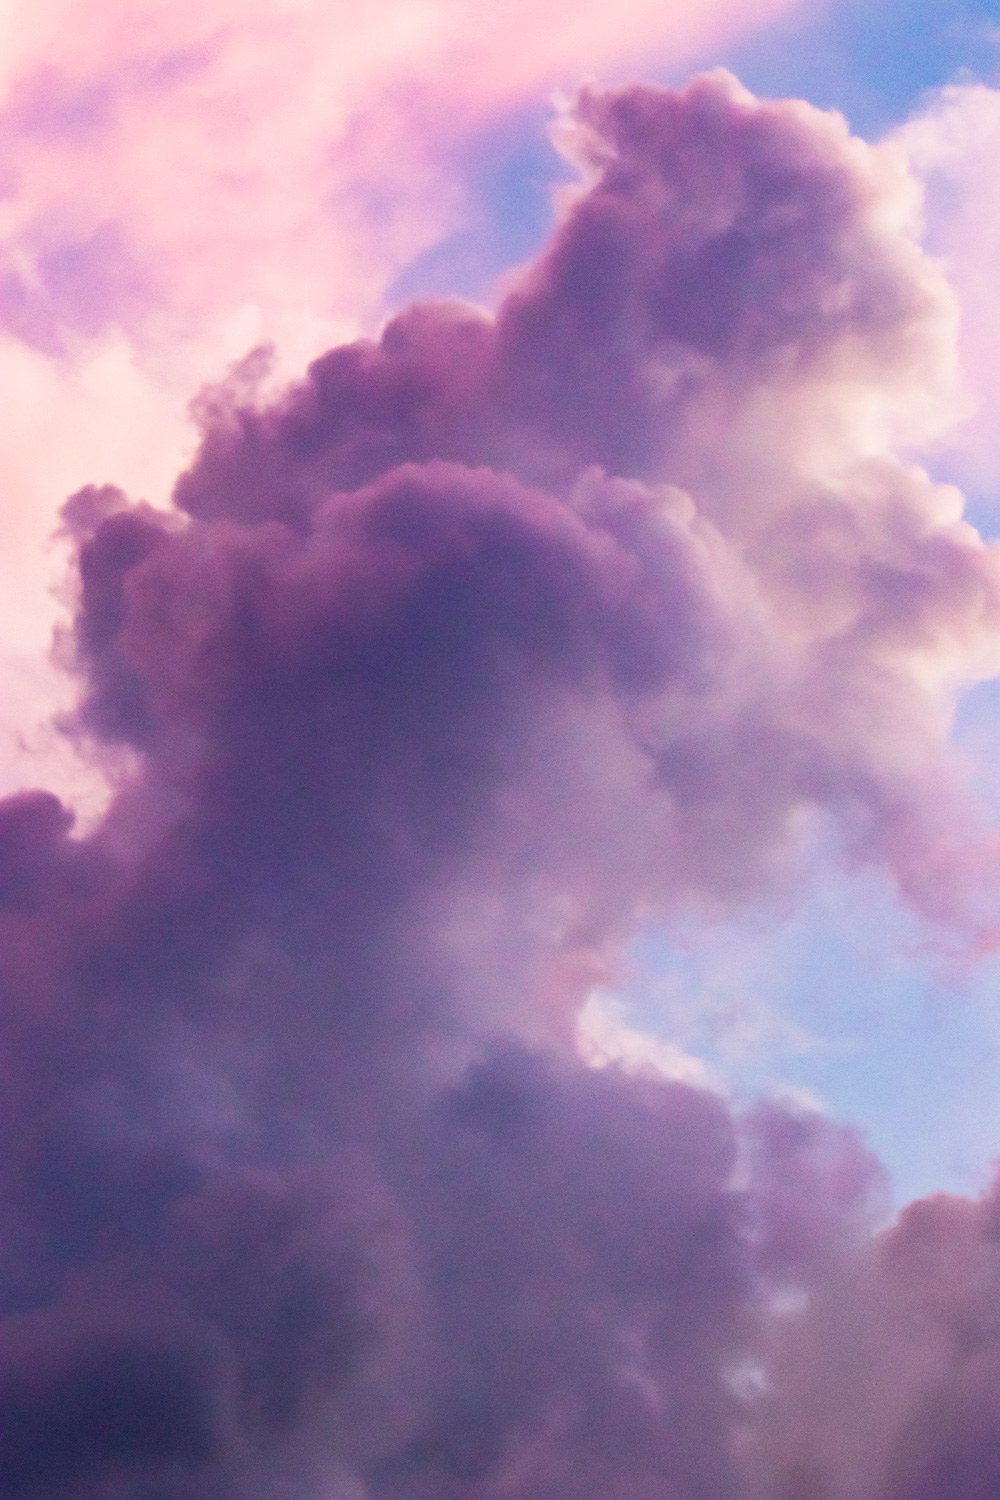 Clouds in Pink and Violet